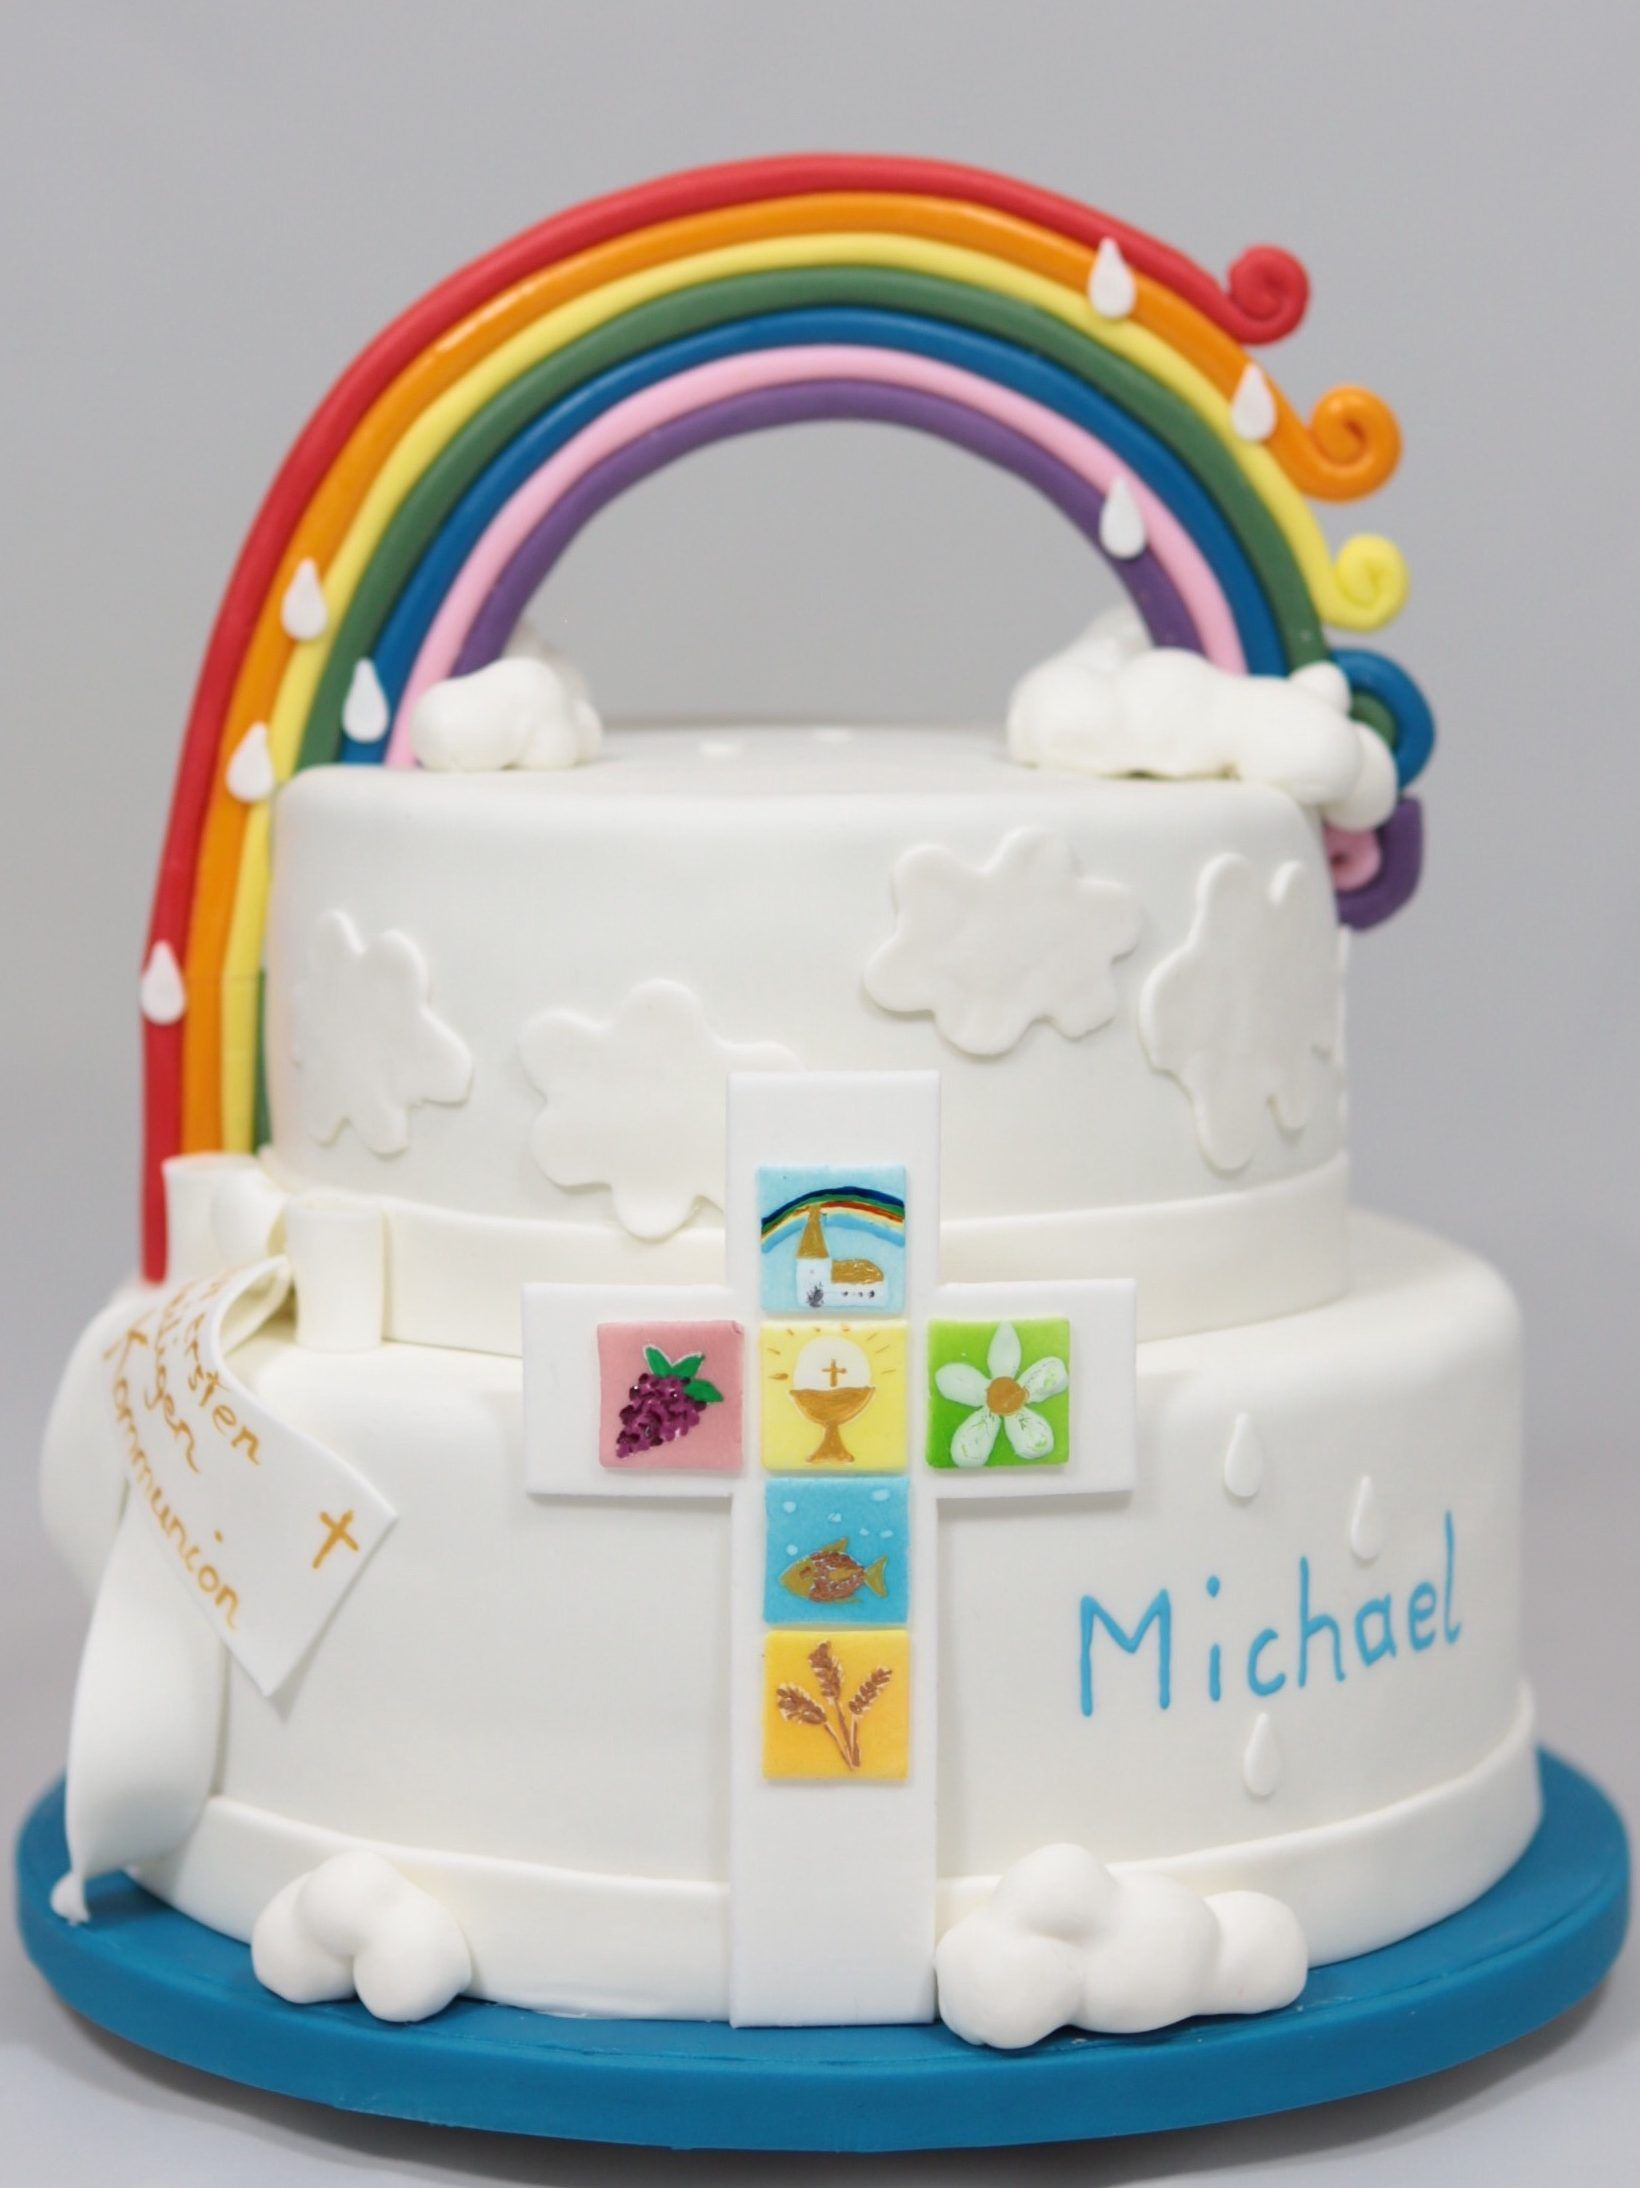 Regenbogen Rainbow Torte Cake First Communion Erstkommunion K